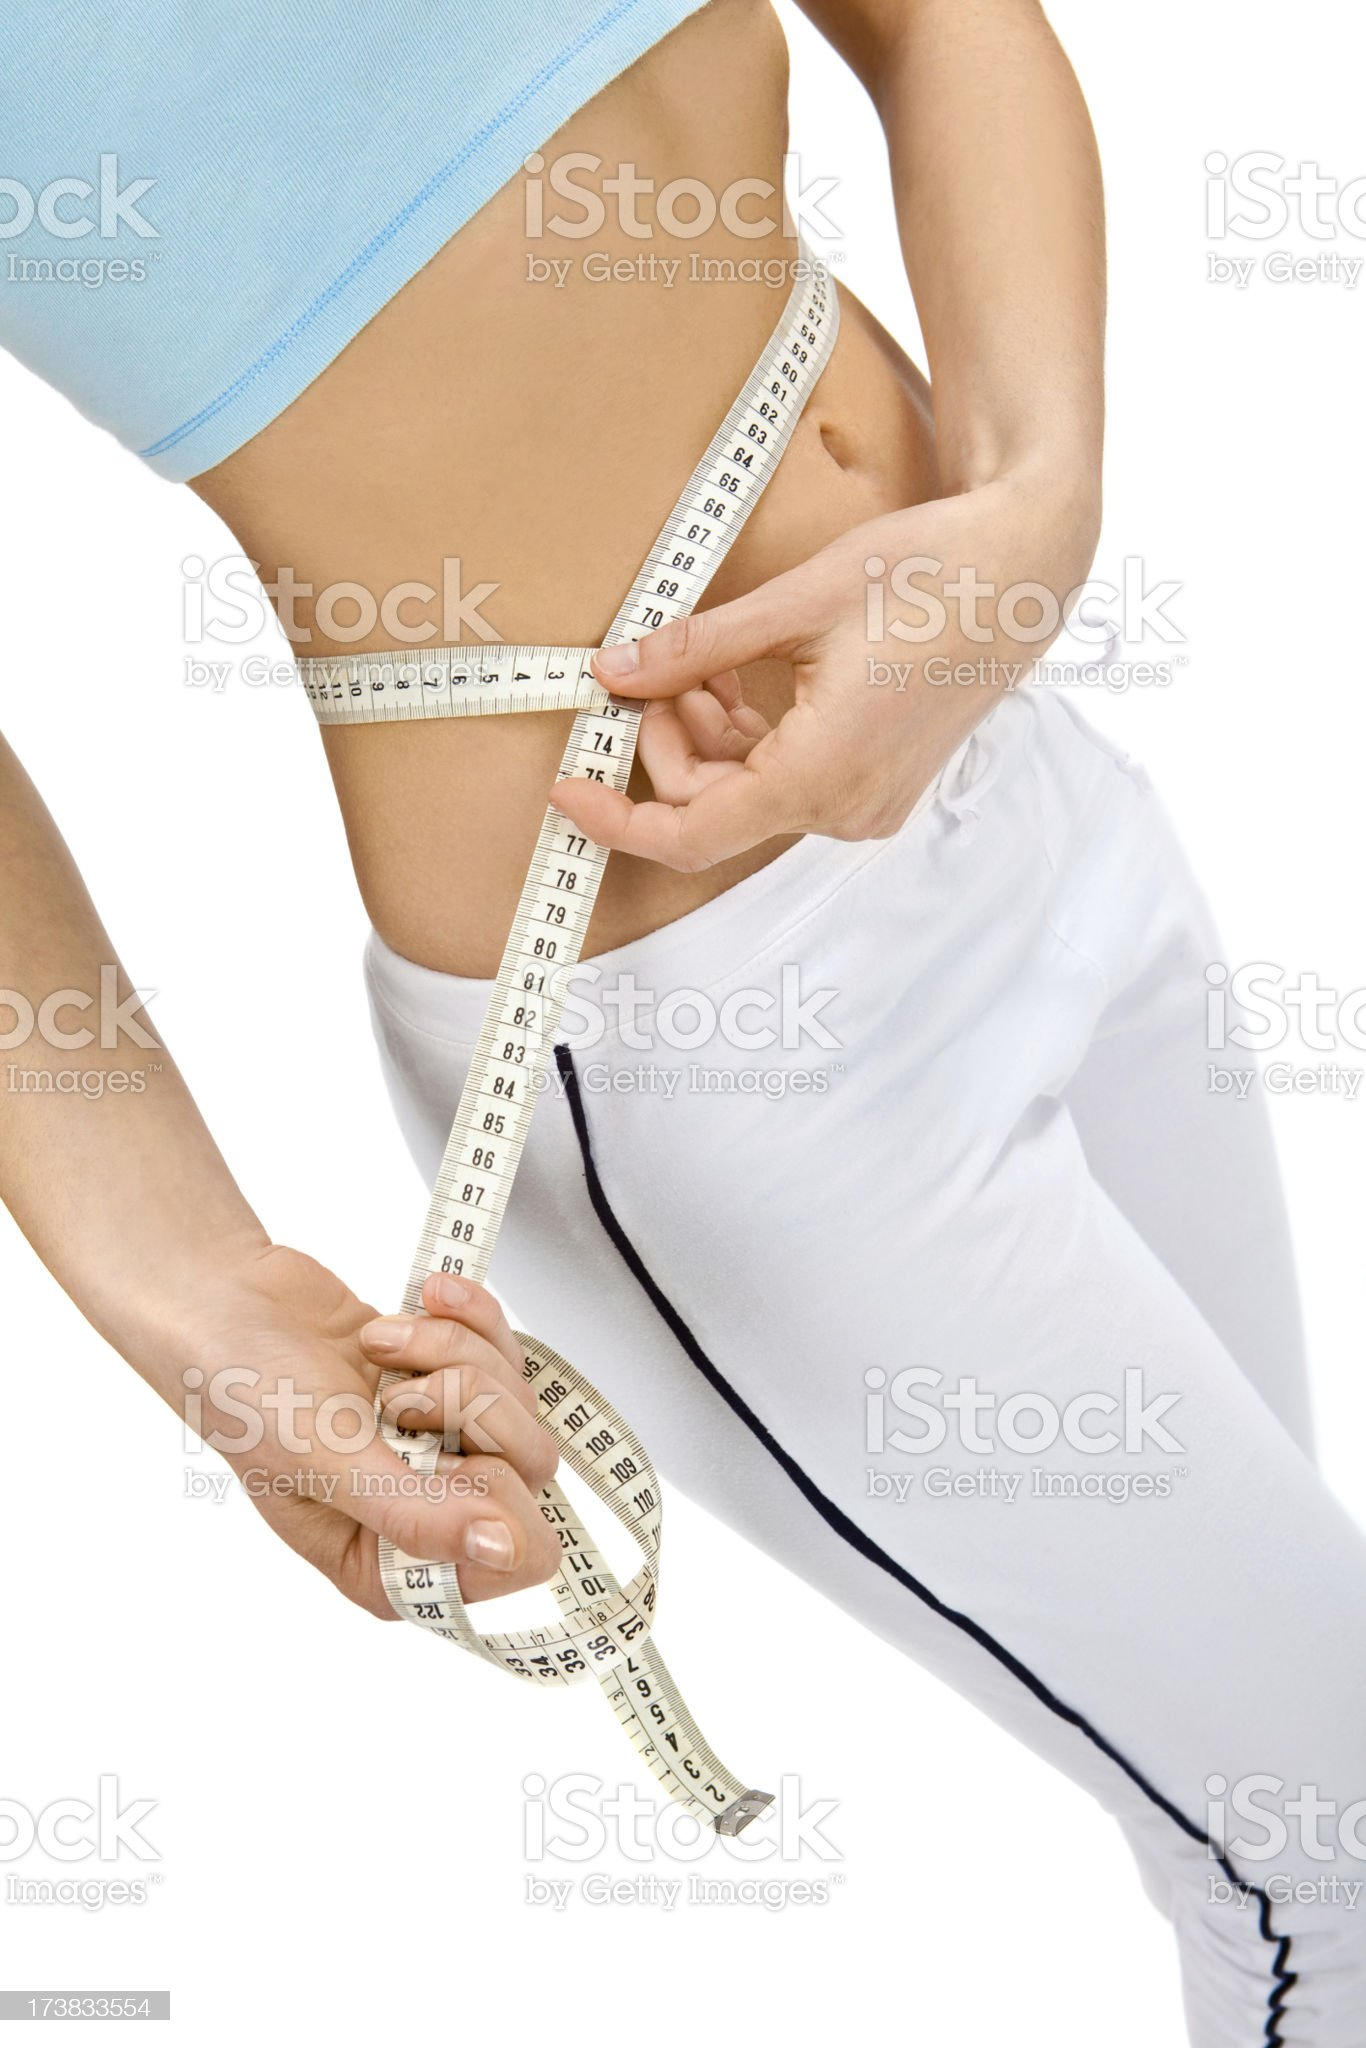 young girl tape measuring abdomen to lose weight royalty-free stock photo